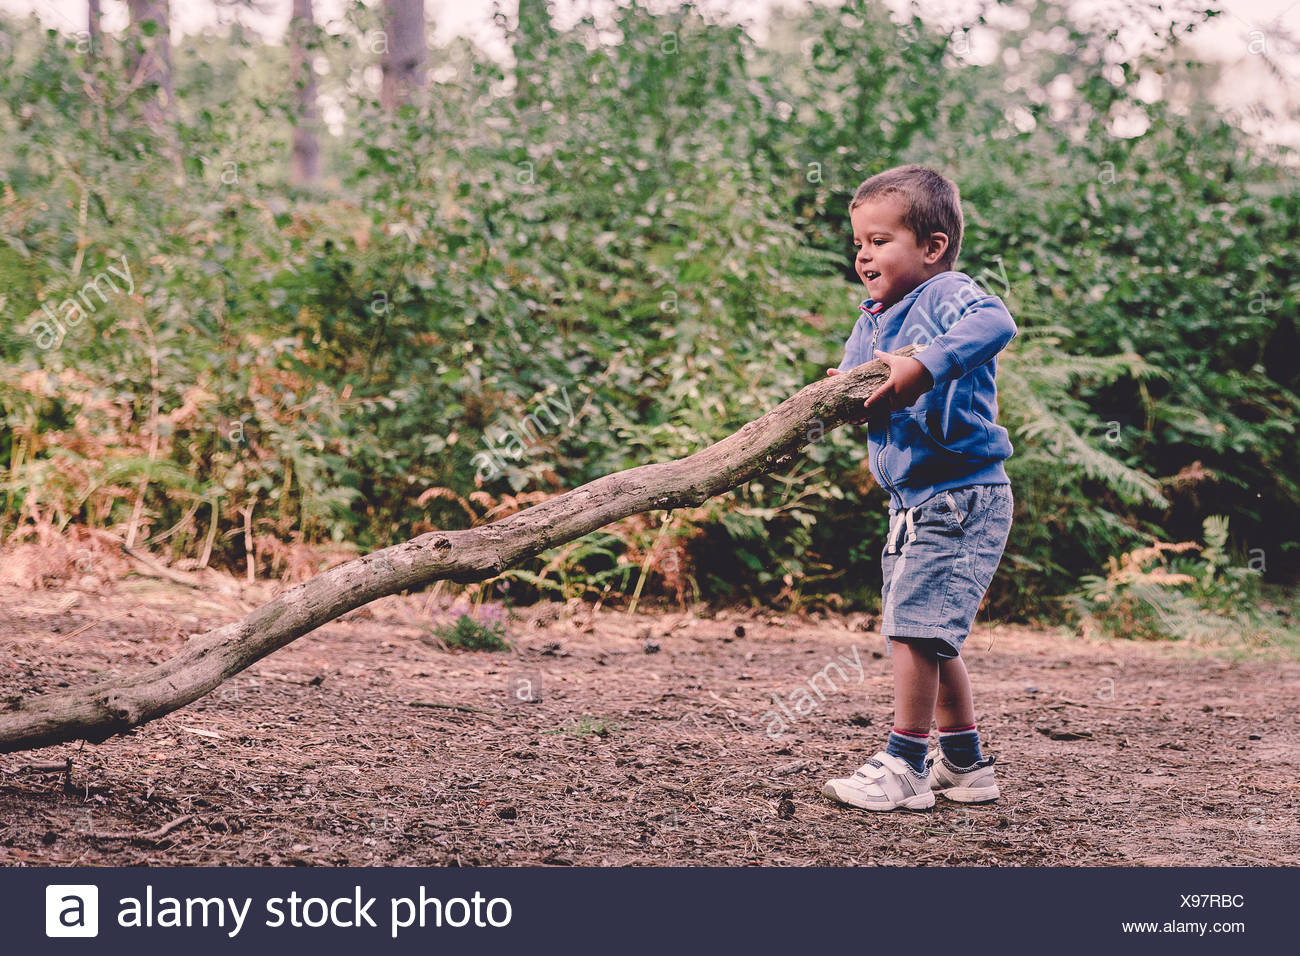 Boy in the woods lifting a heavy log - Stock Image